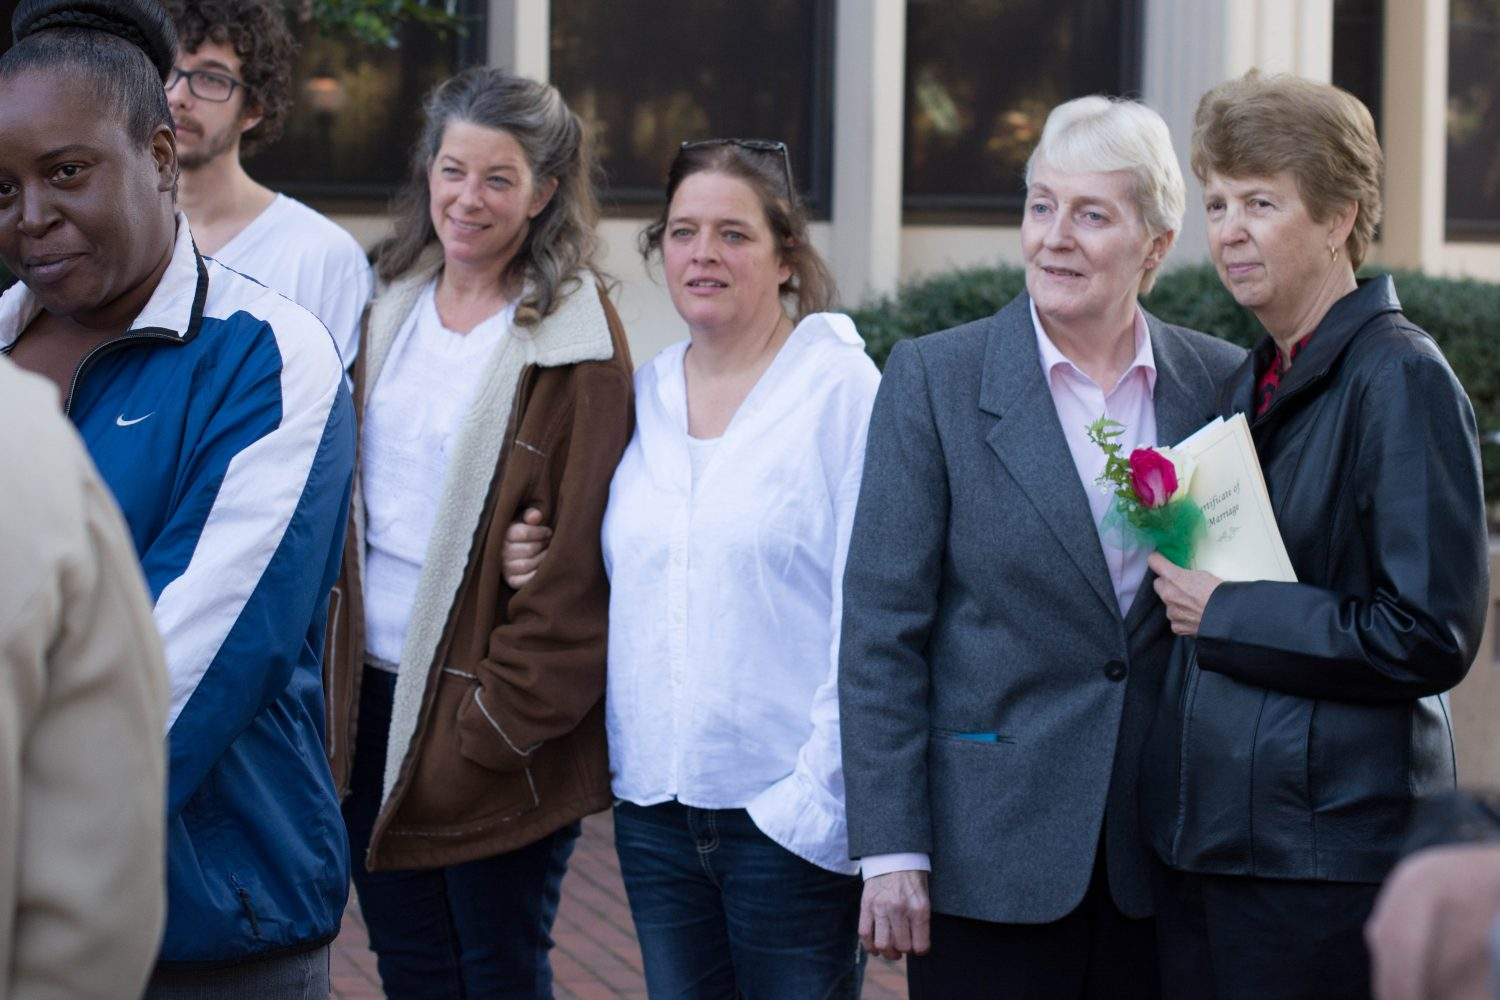 From left, Kat Drawdy, Joy Drawdy, Lola Yousey and Karen Niederkohr watch the wedding reception of LaKindra Ellis-White and Quintyra White outside the Alachua County Courthouse Tuesday, Jan. 6.